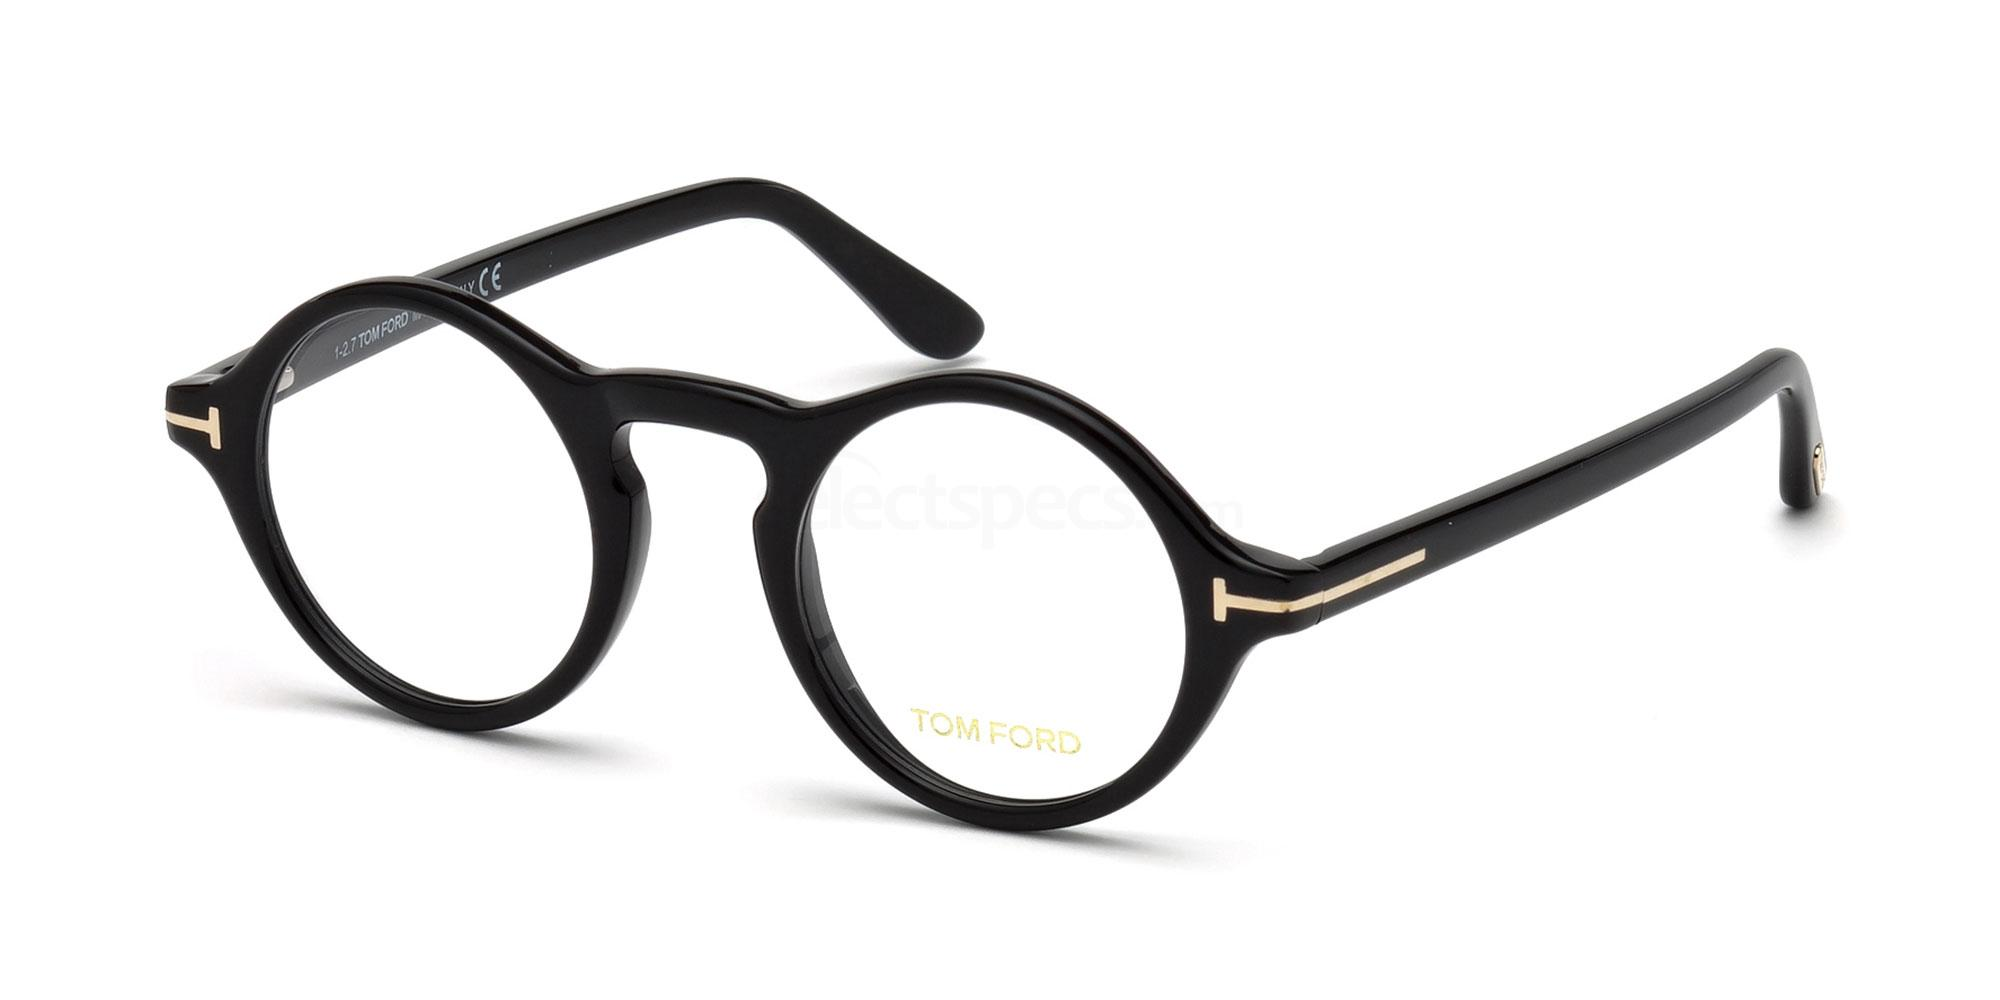 001 FT5526 Glasses, Tom Ford